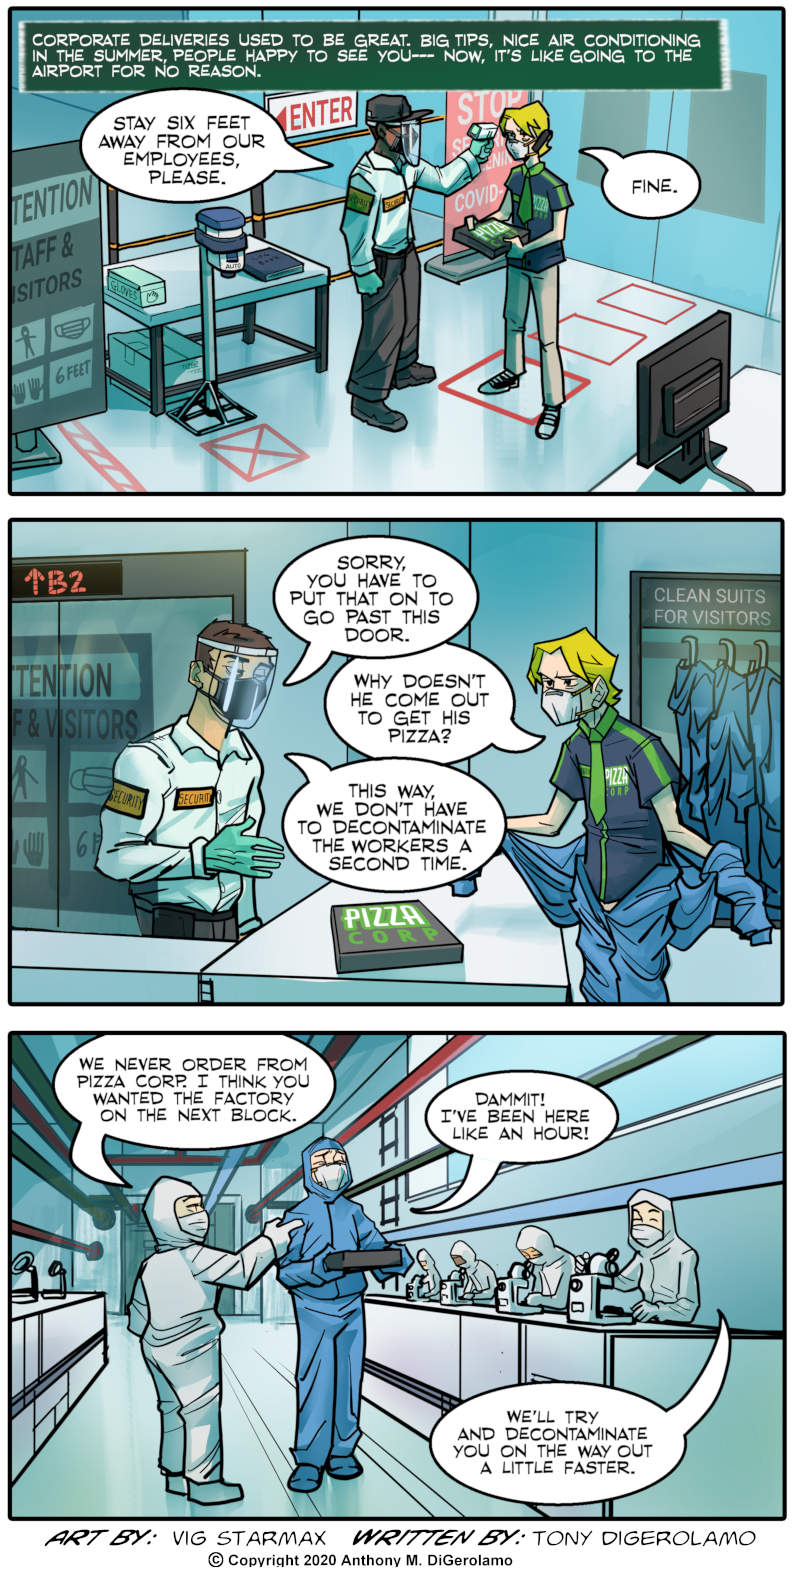 Tales of Pizza:  Corporate Pizza